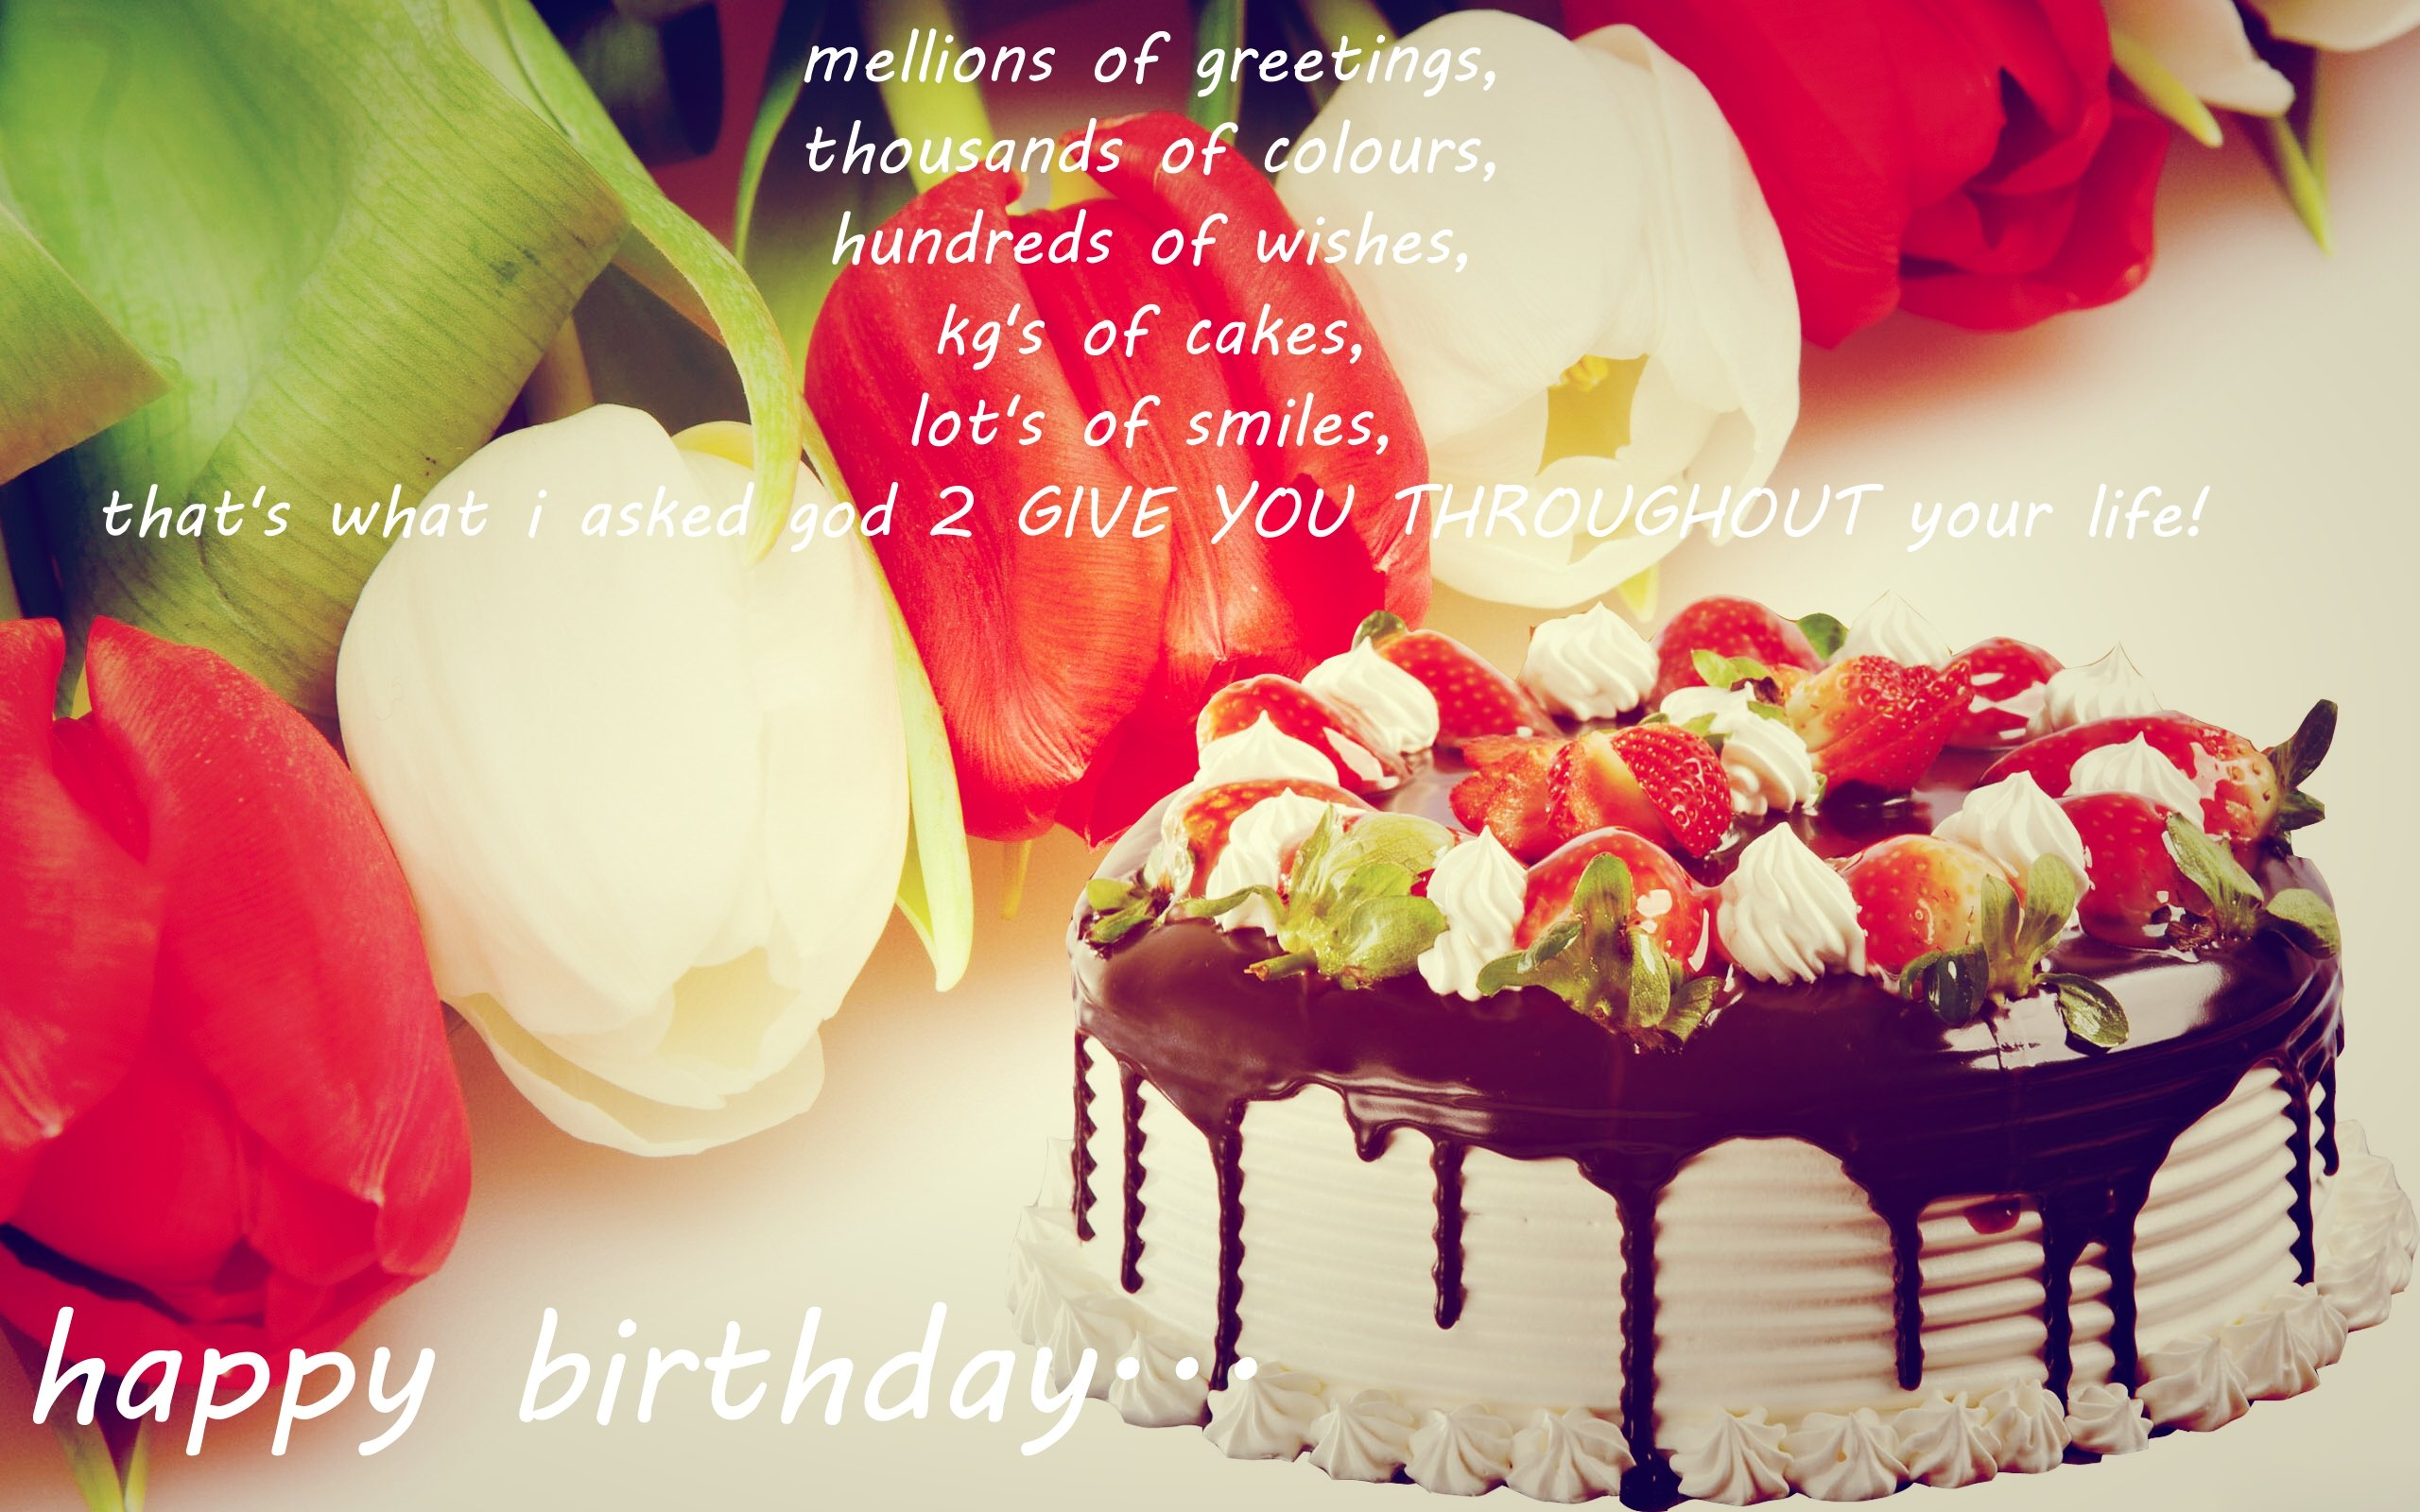 birthday wallpaper with quotes ; 9f1697d028cd87d536f42f65c33d338e